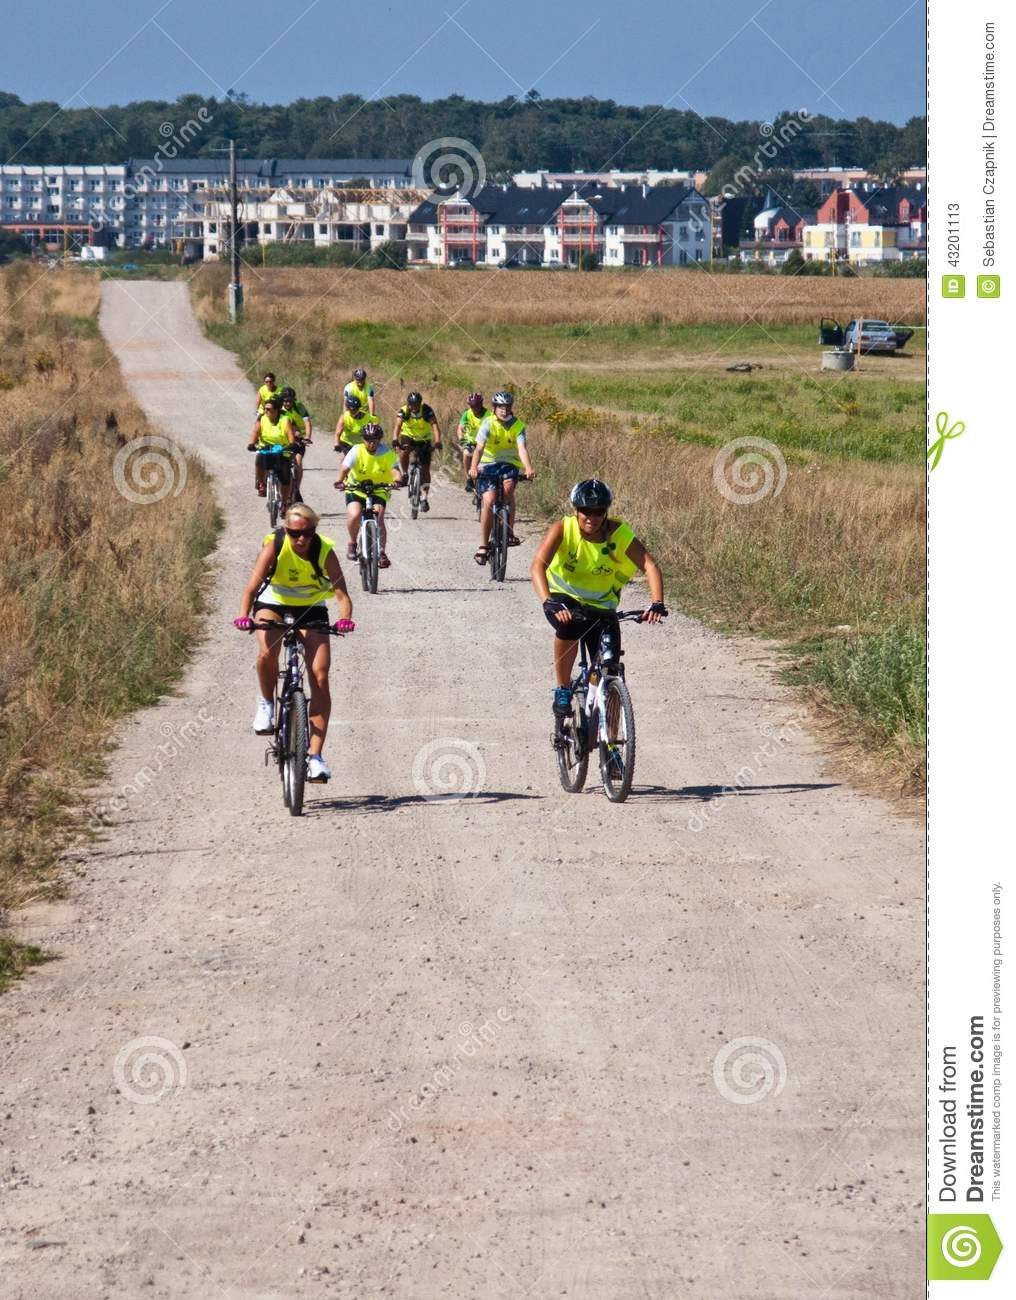 Group of cyclists in Northern Poland